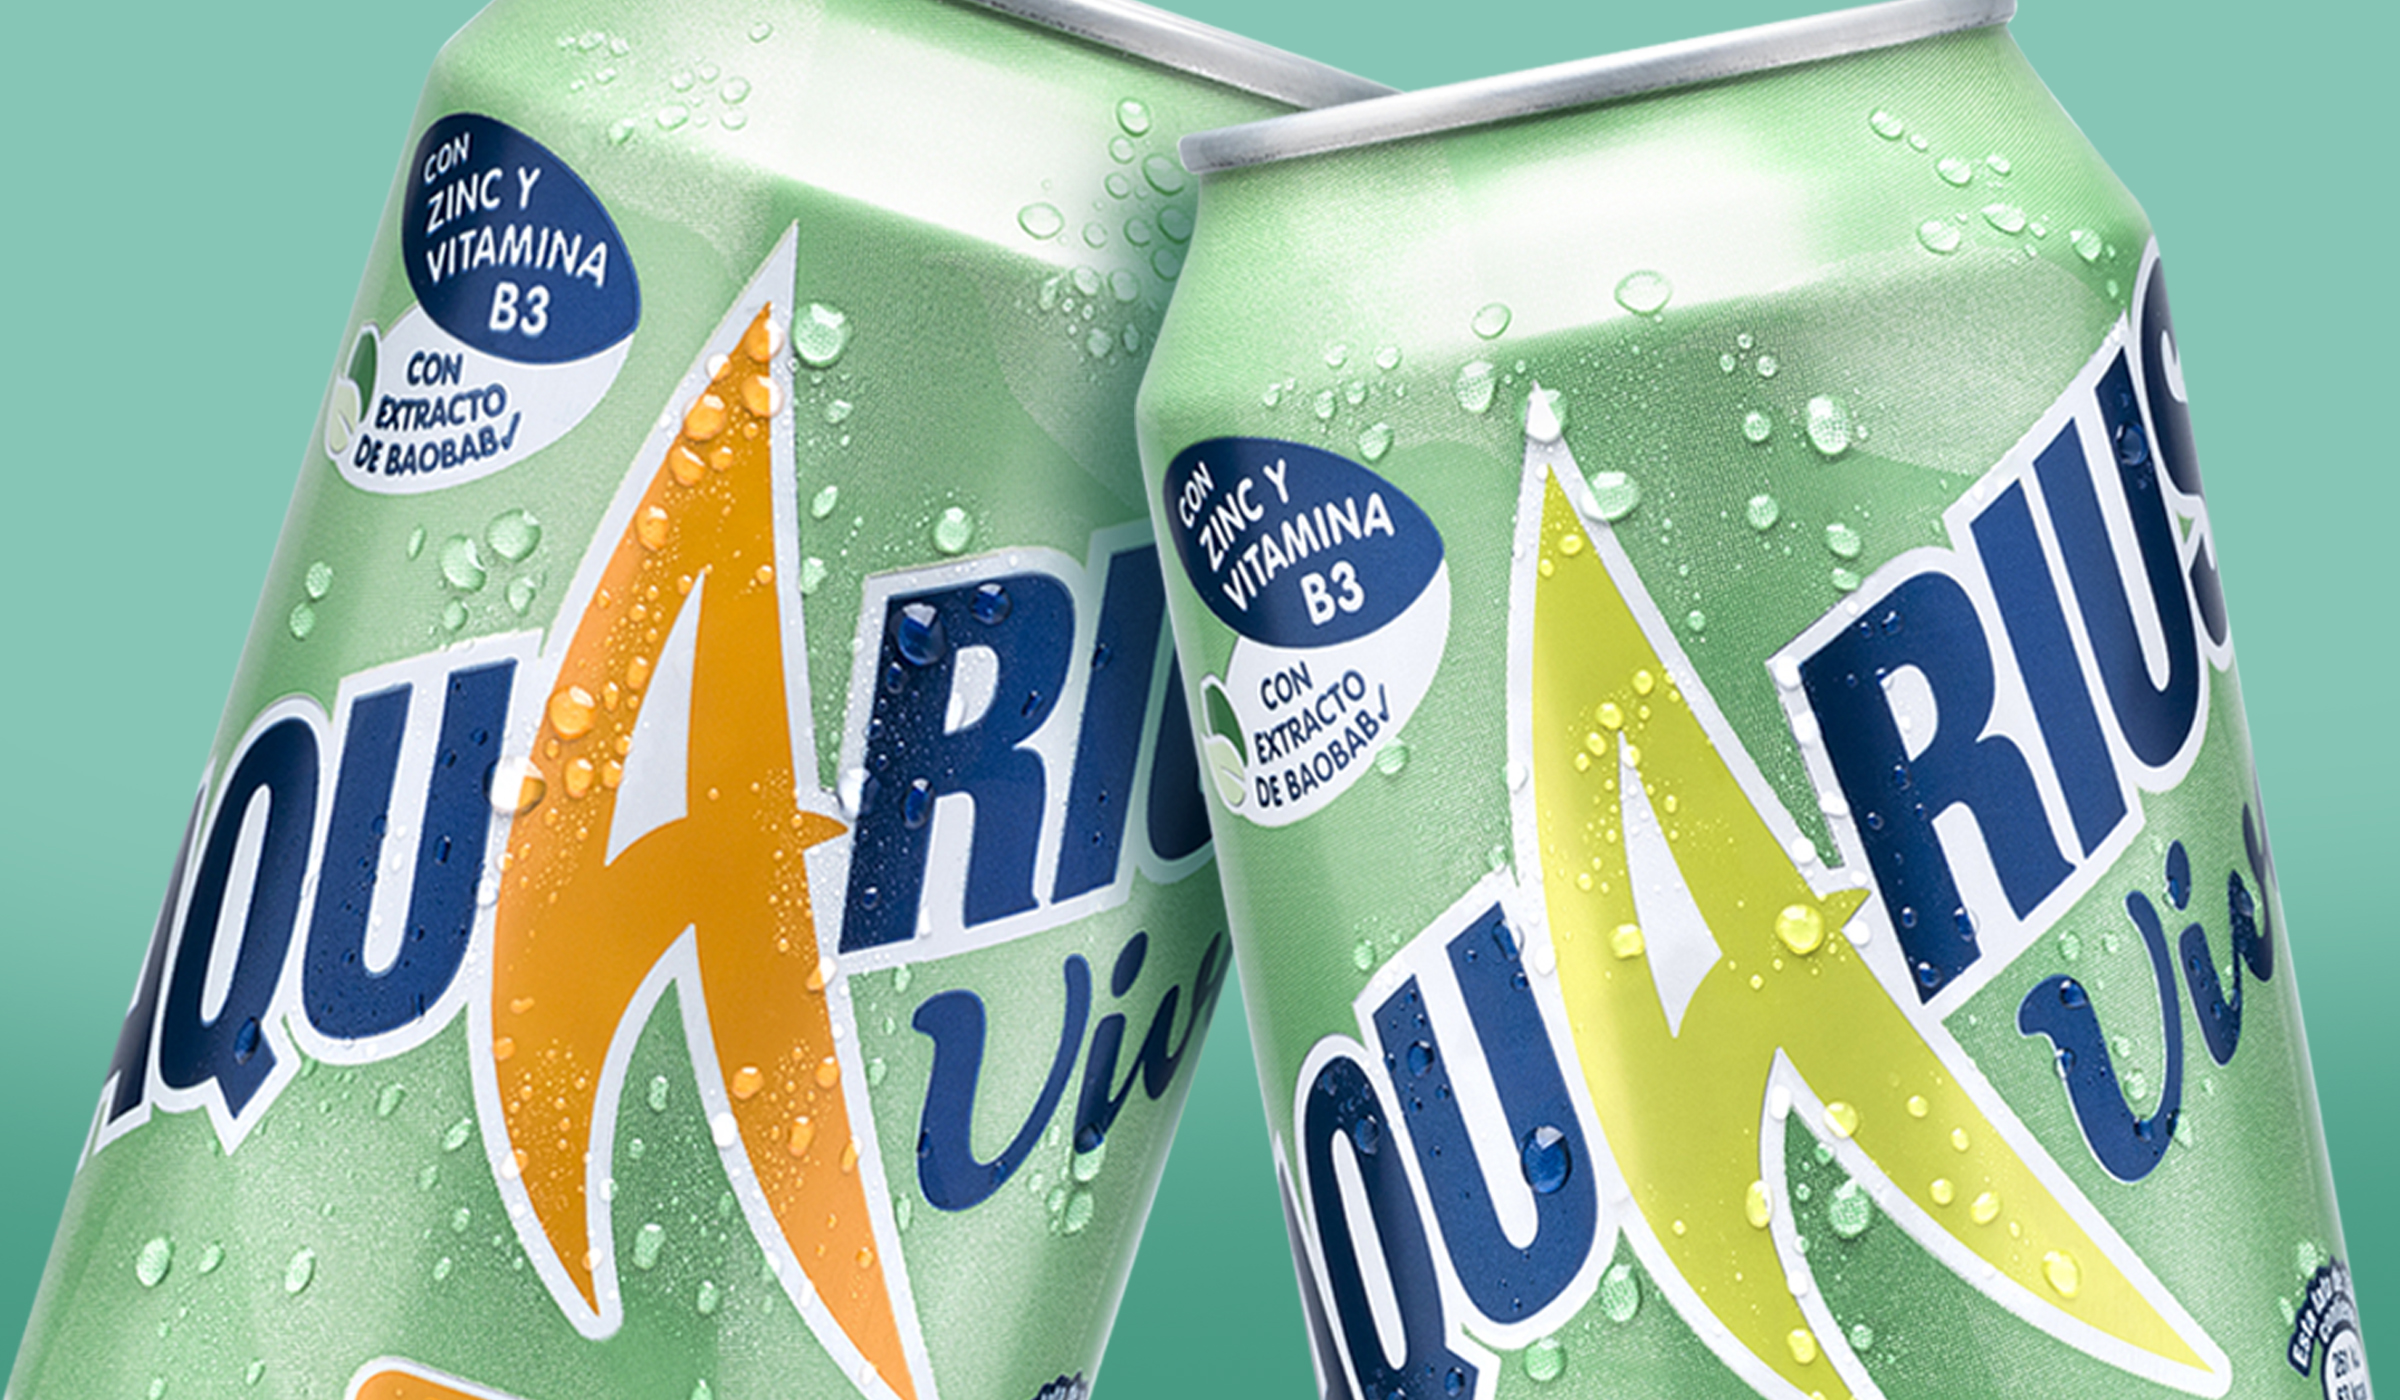 This image is of both flavour variants of Aquarius Vive. The can packaging design was produced by P&W for The Coca-Cola Company Iberia.